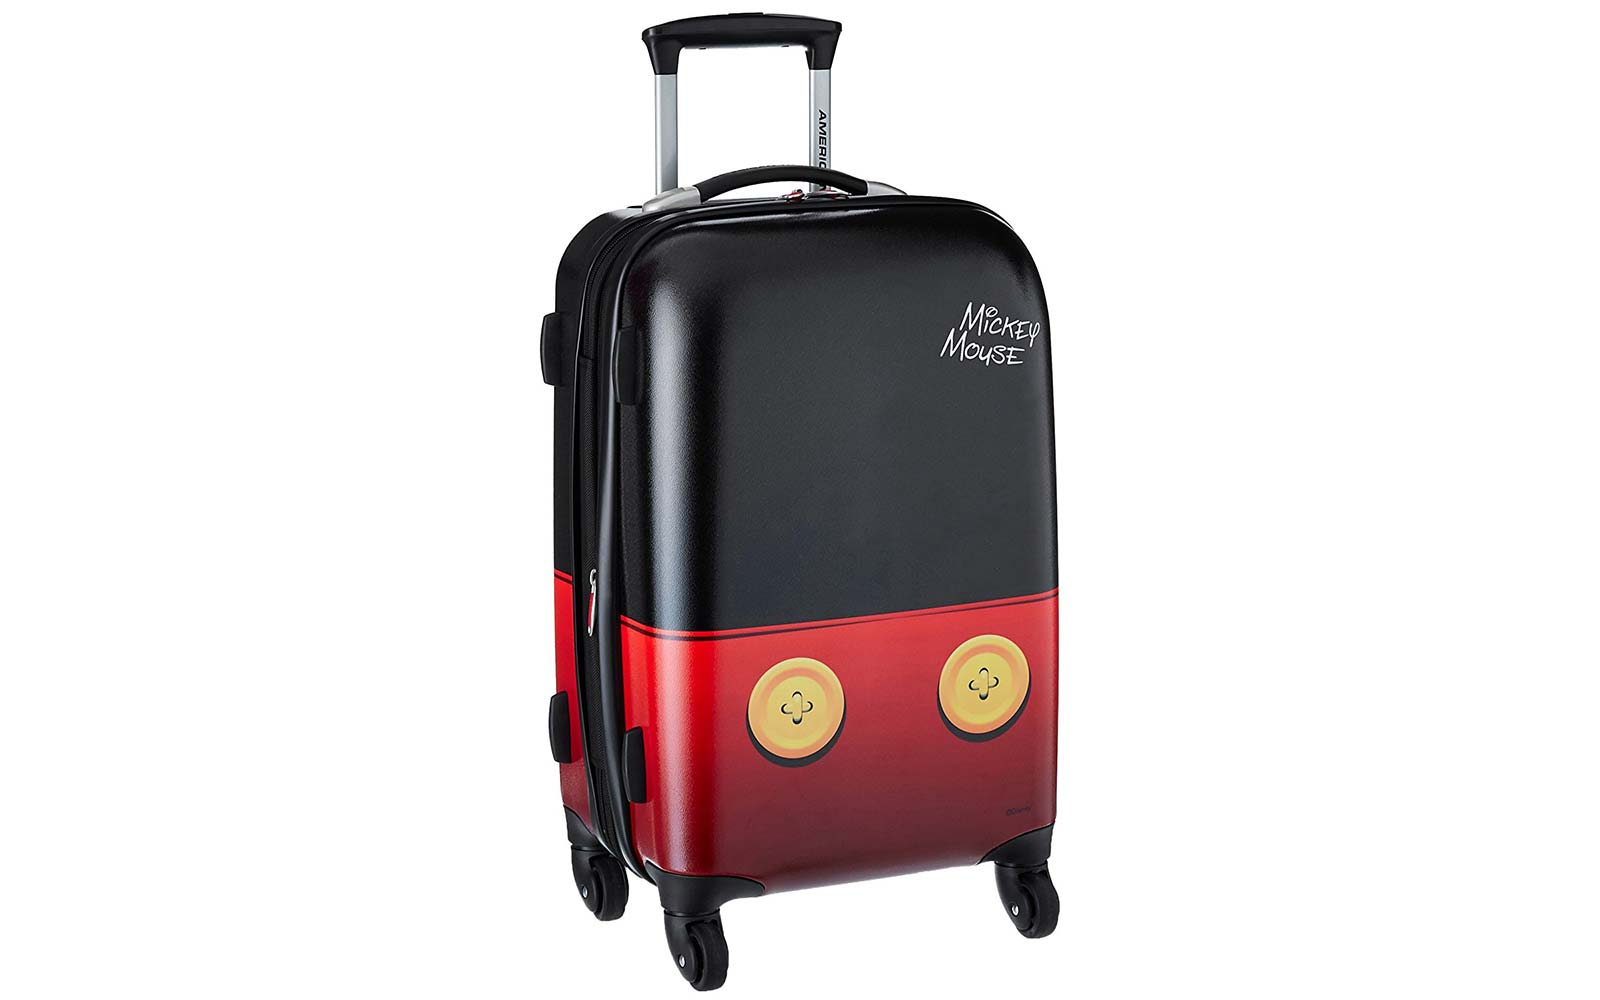 870d6407b4 Disney-themed Luggage for Kids and Adults